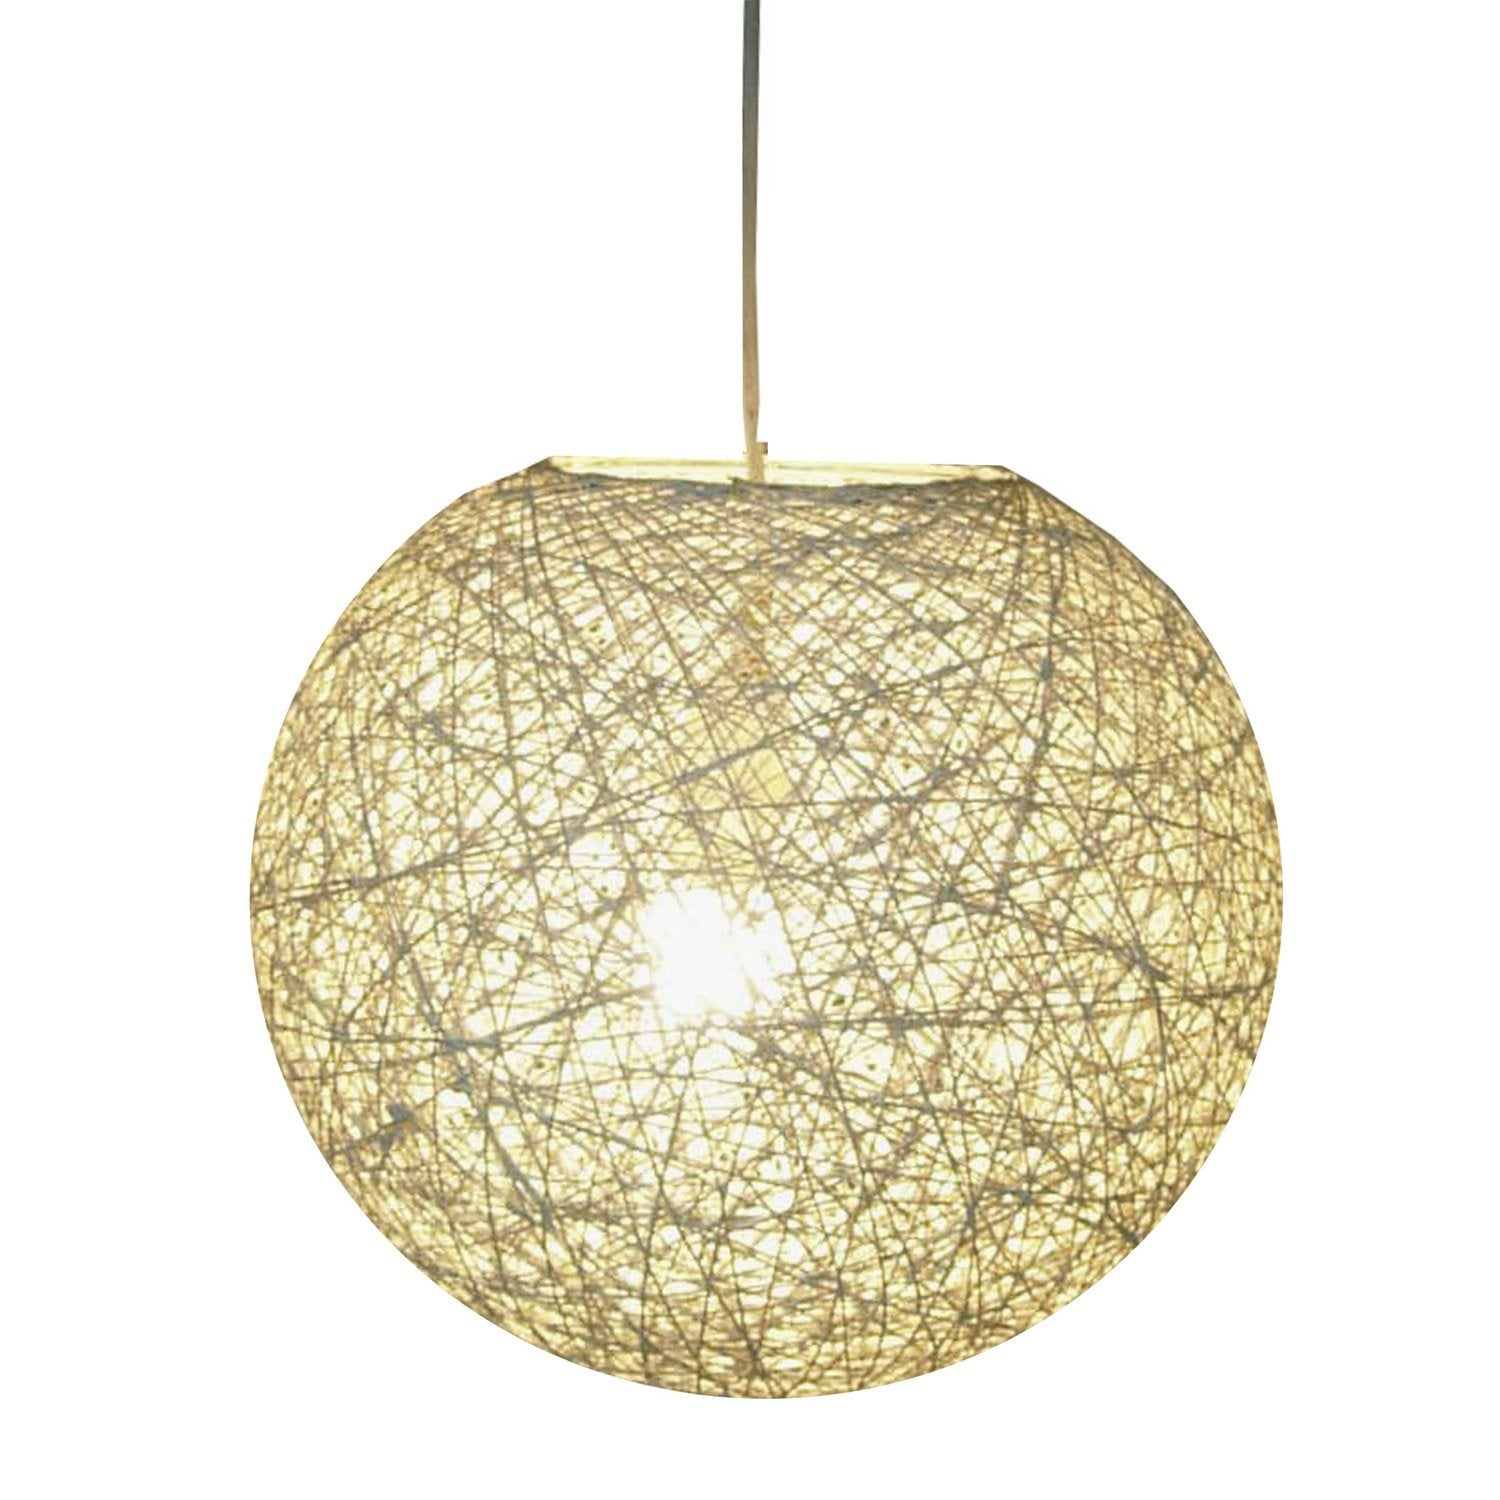 Suspension, e14 bohème Kirou rotin naturel 1 x 40 W SEYNAVE